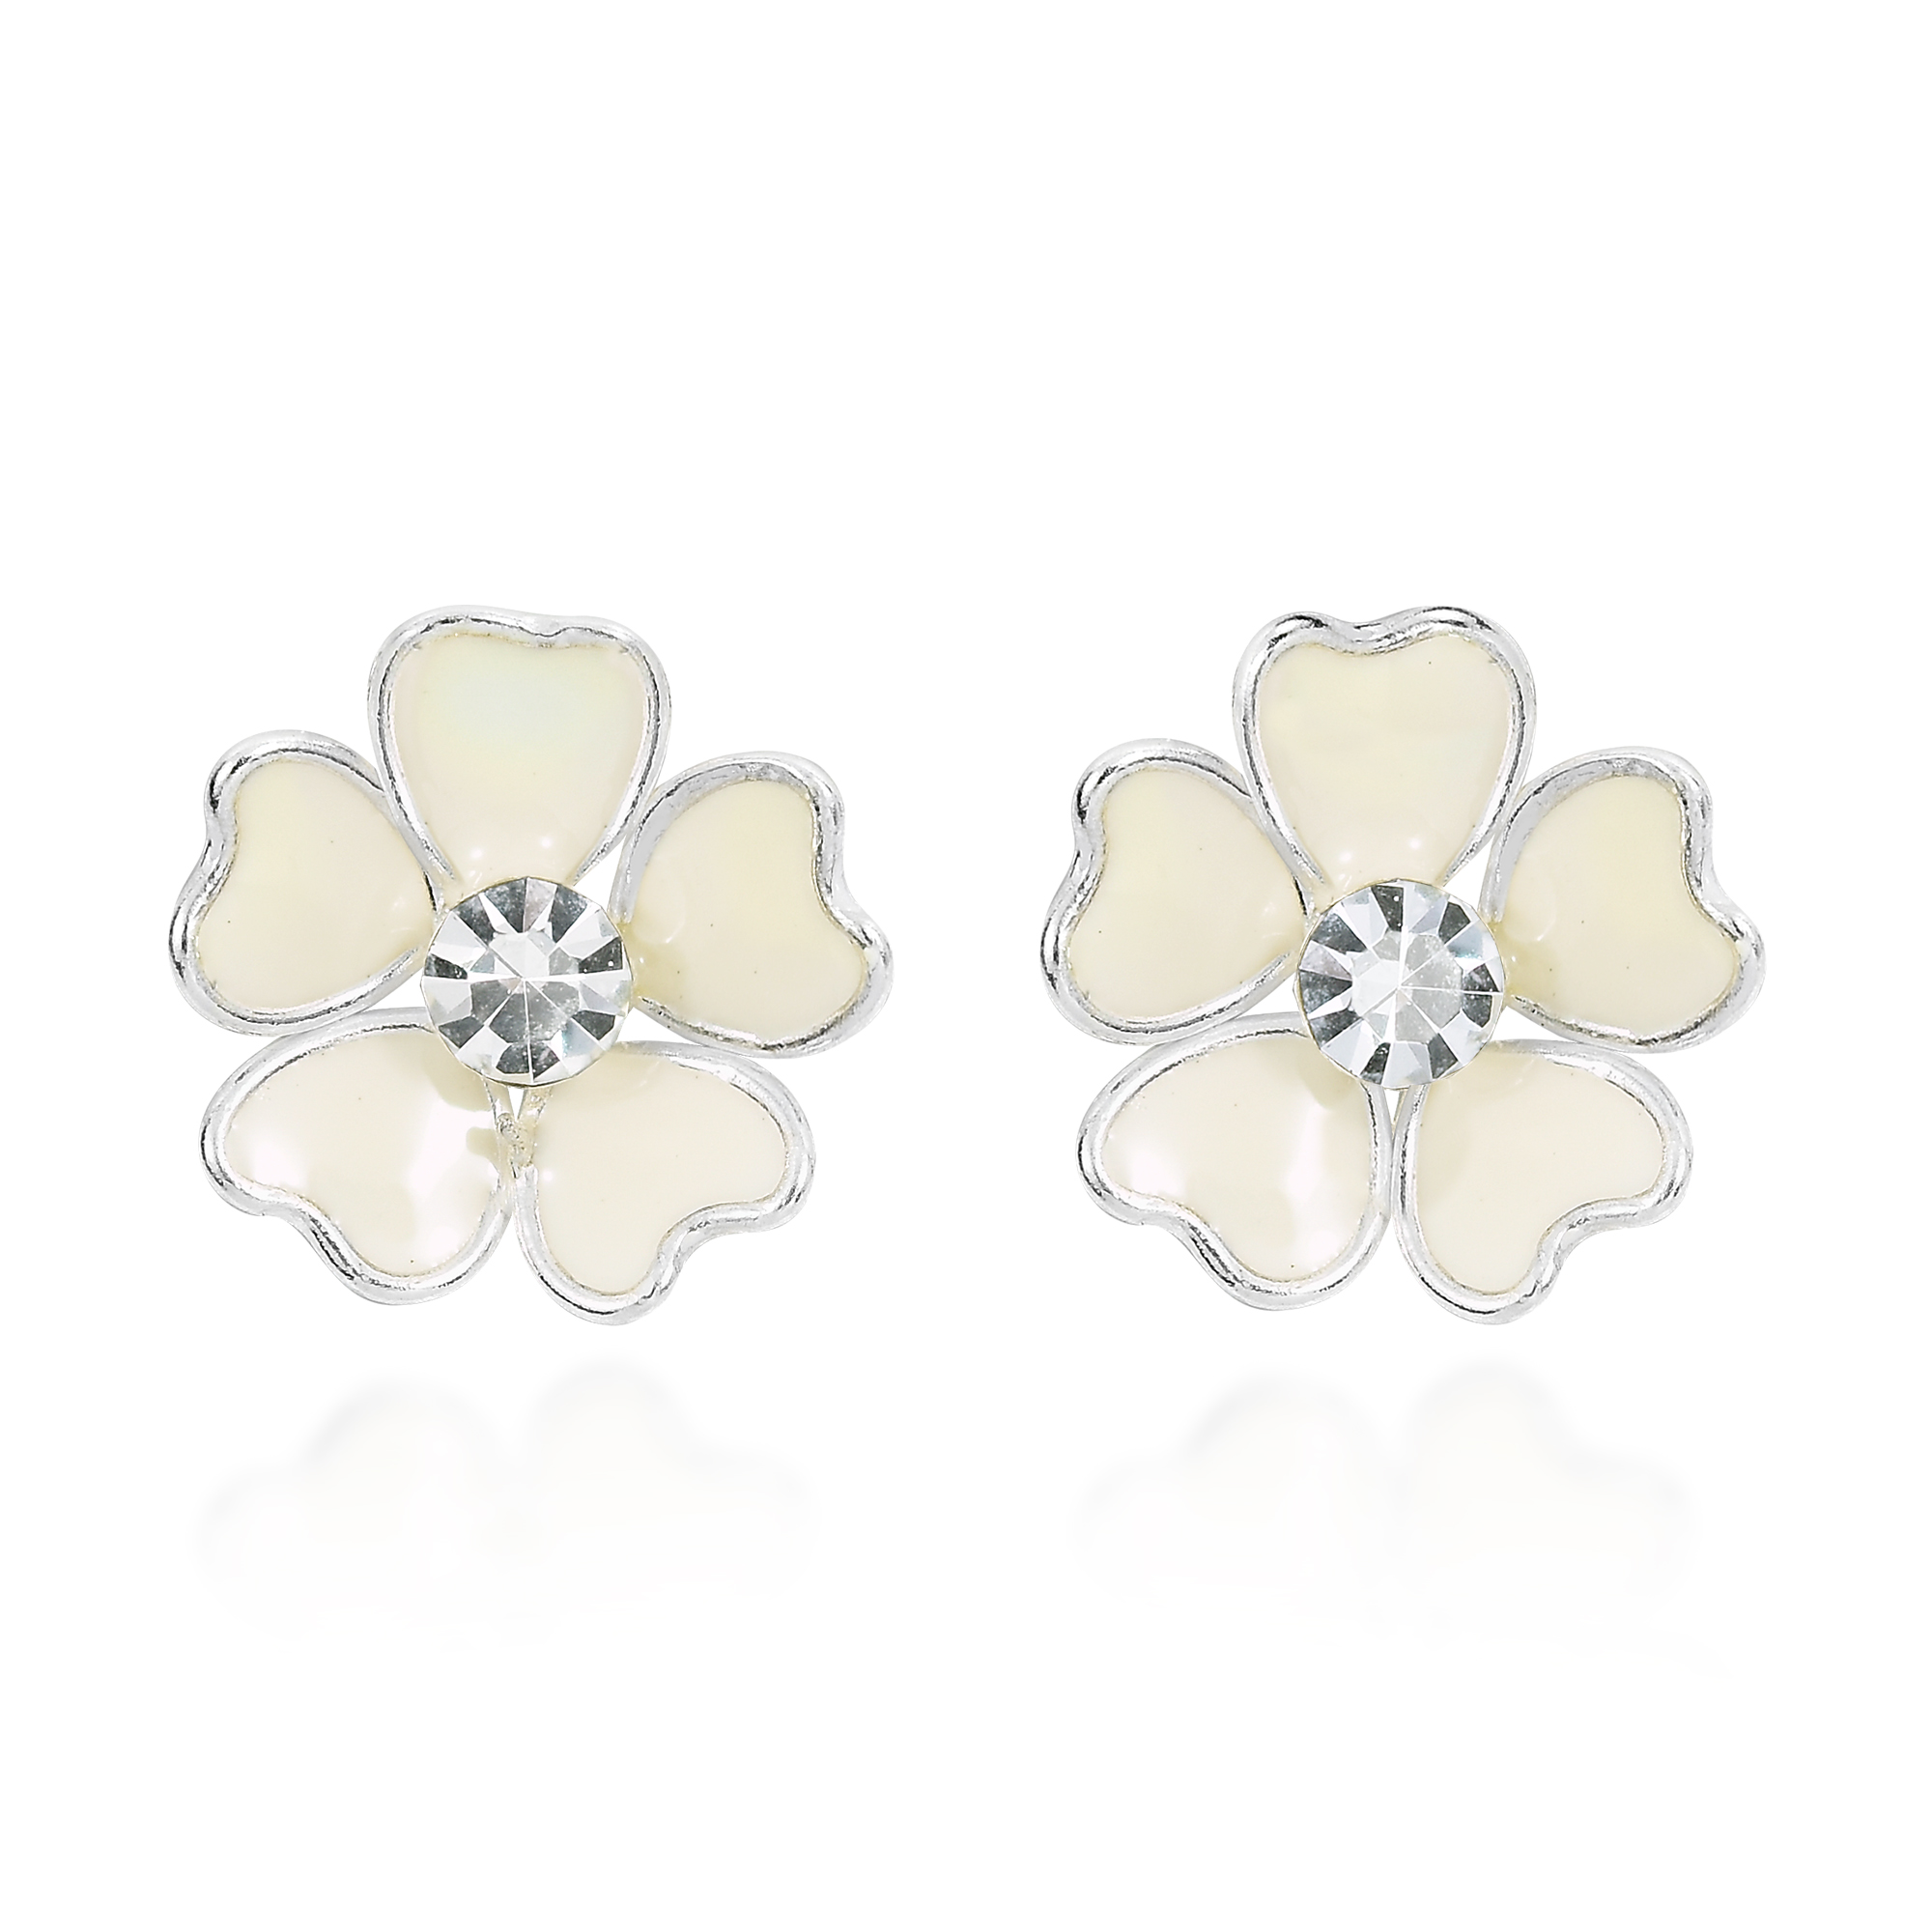 Mini heart petal plumeria white enamel sterling silver stud earrings inspired by the allure of native hawaiian flowers these earrings were handcrafted by artisan khun jai from thailand the earrings feature the plumeria izmirmasajfo